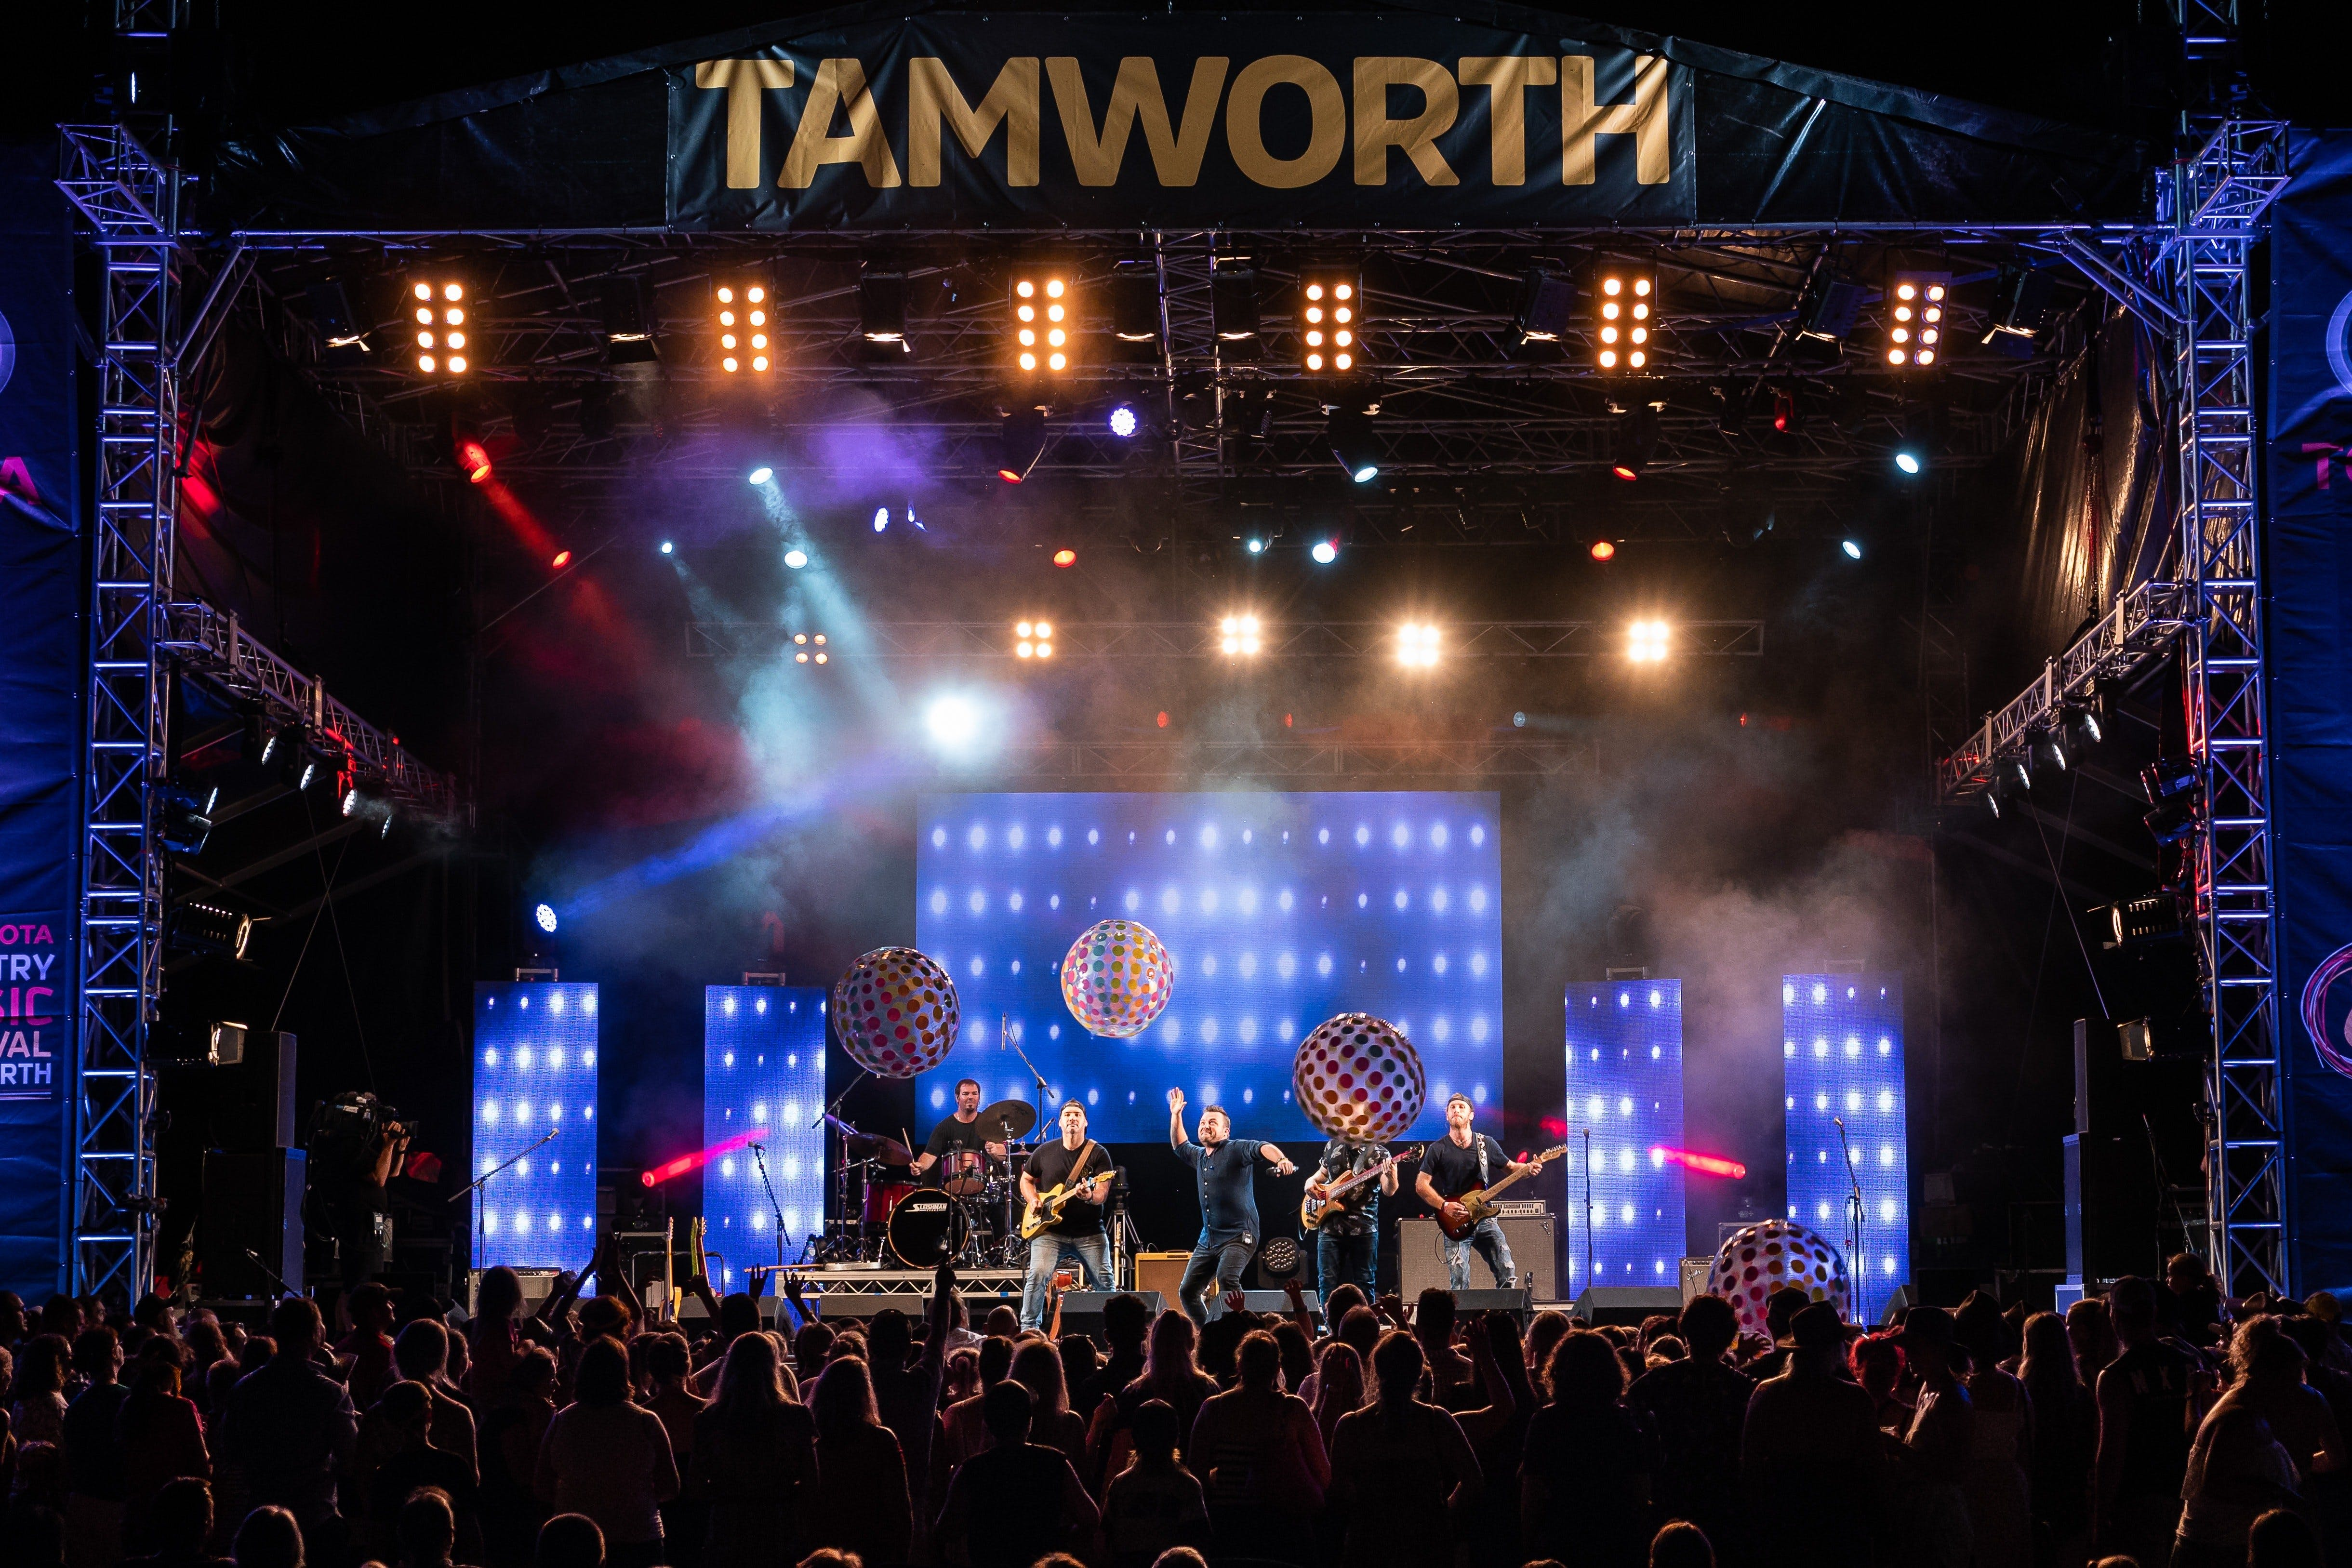 Toyota Country Music Festival Tamworth - Melbourne Tourism